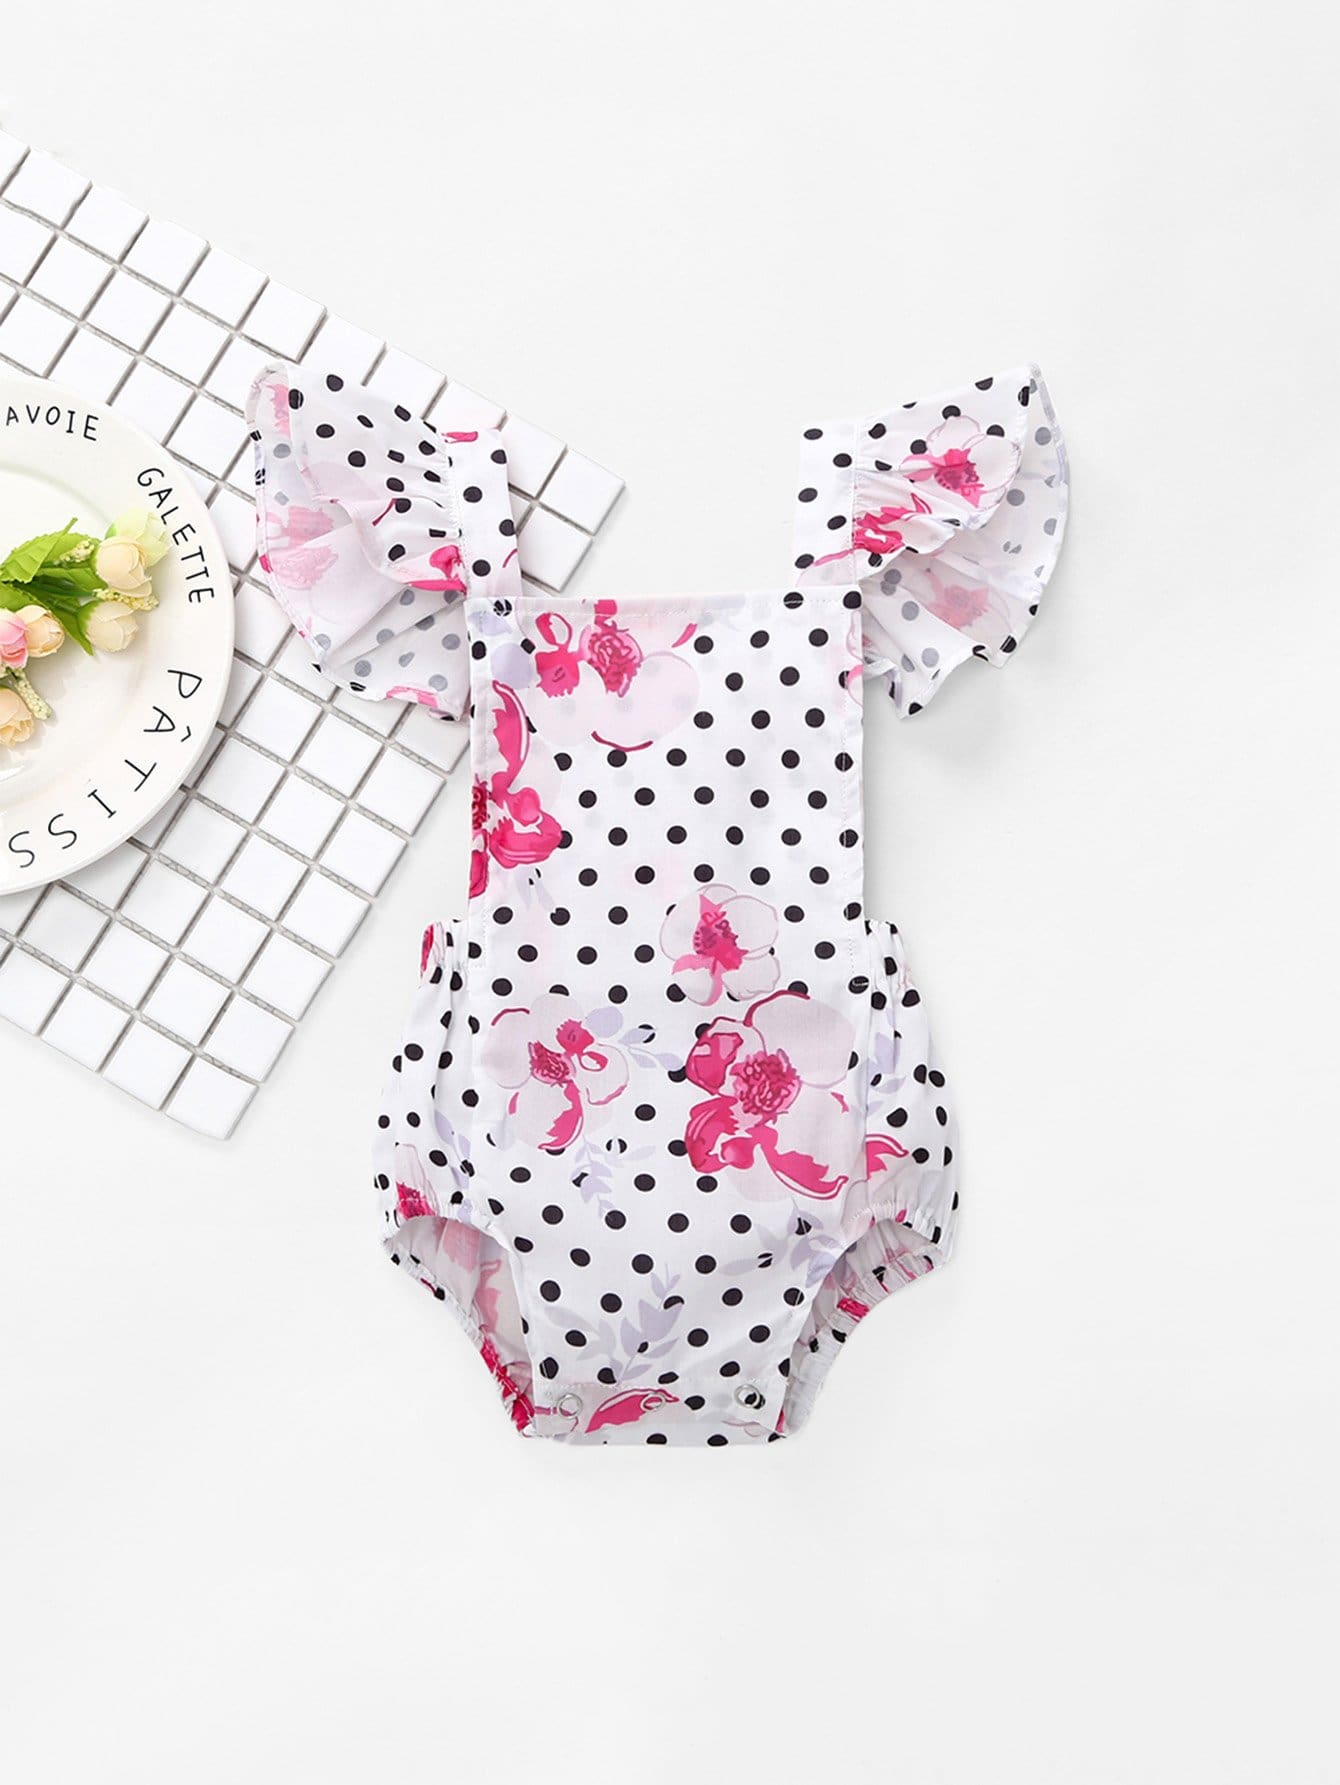 Girls Baby Knot Back Spot Ruffle Romper newborn baby boy girl infant warm cotton outfit jumpsuit romper bodysuit clothes